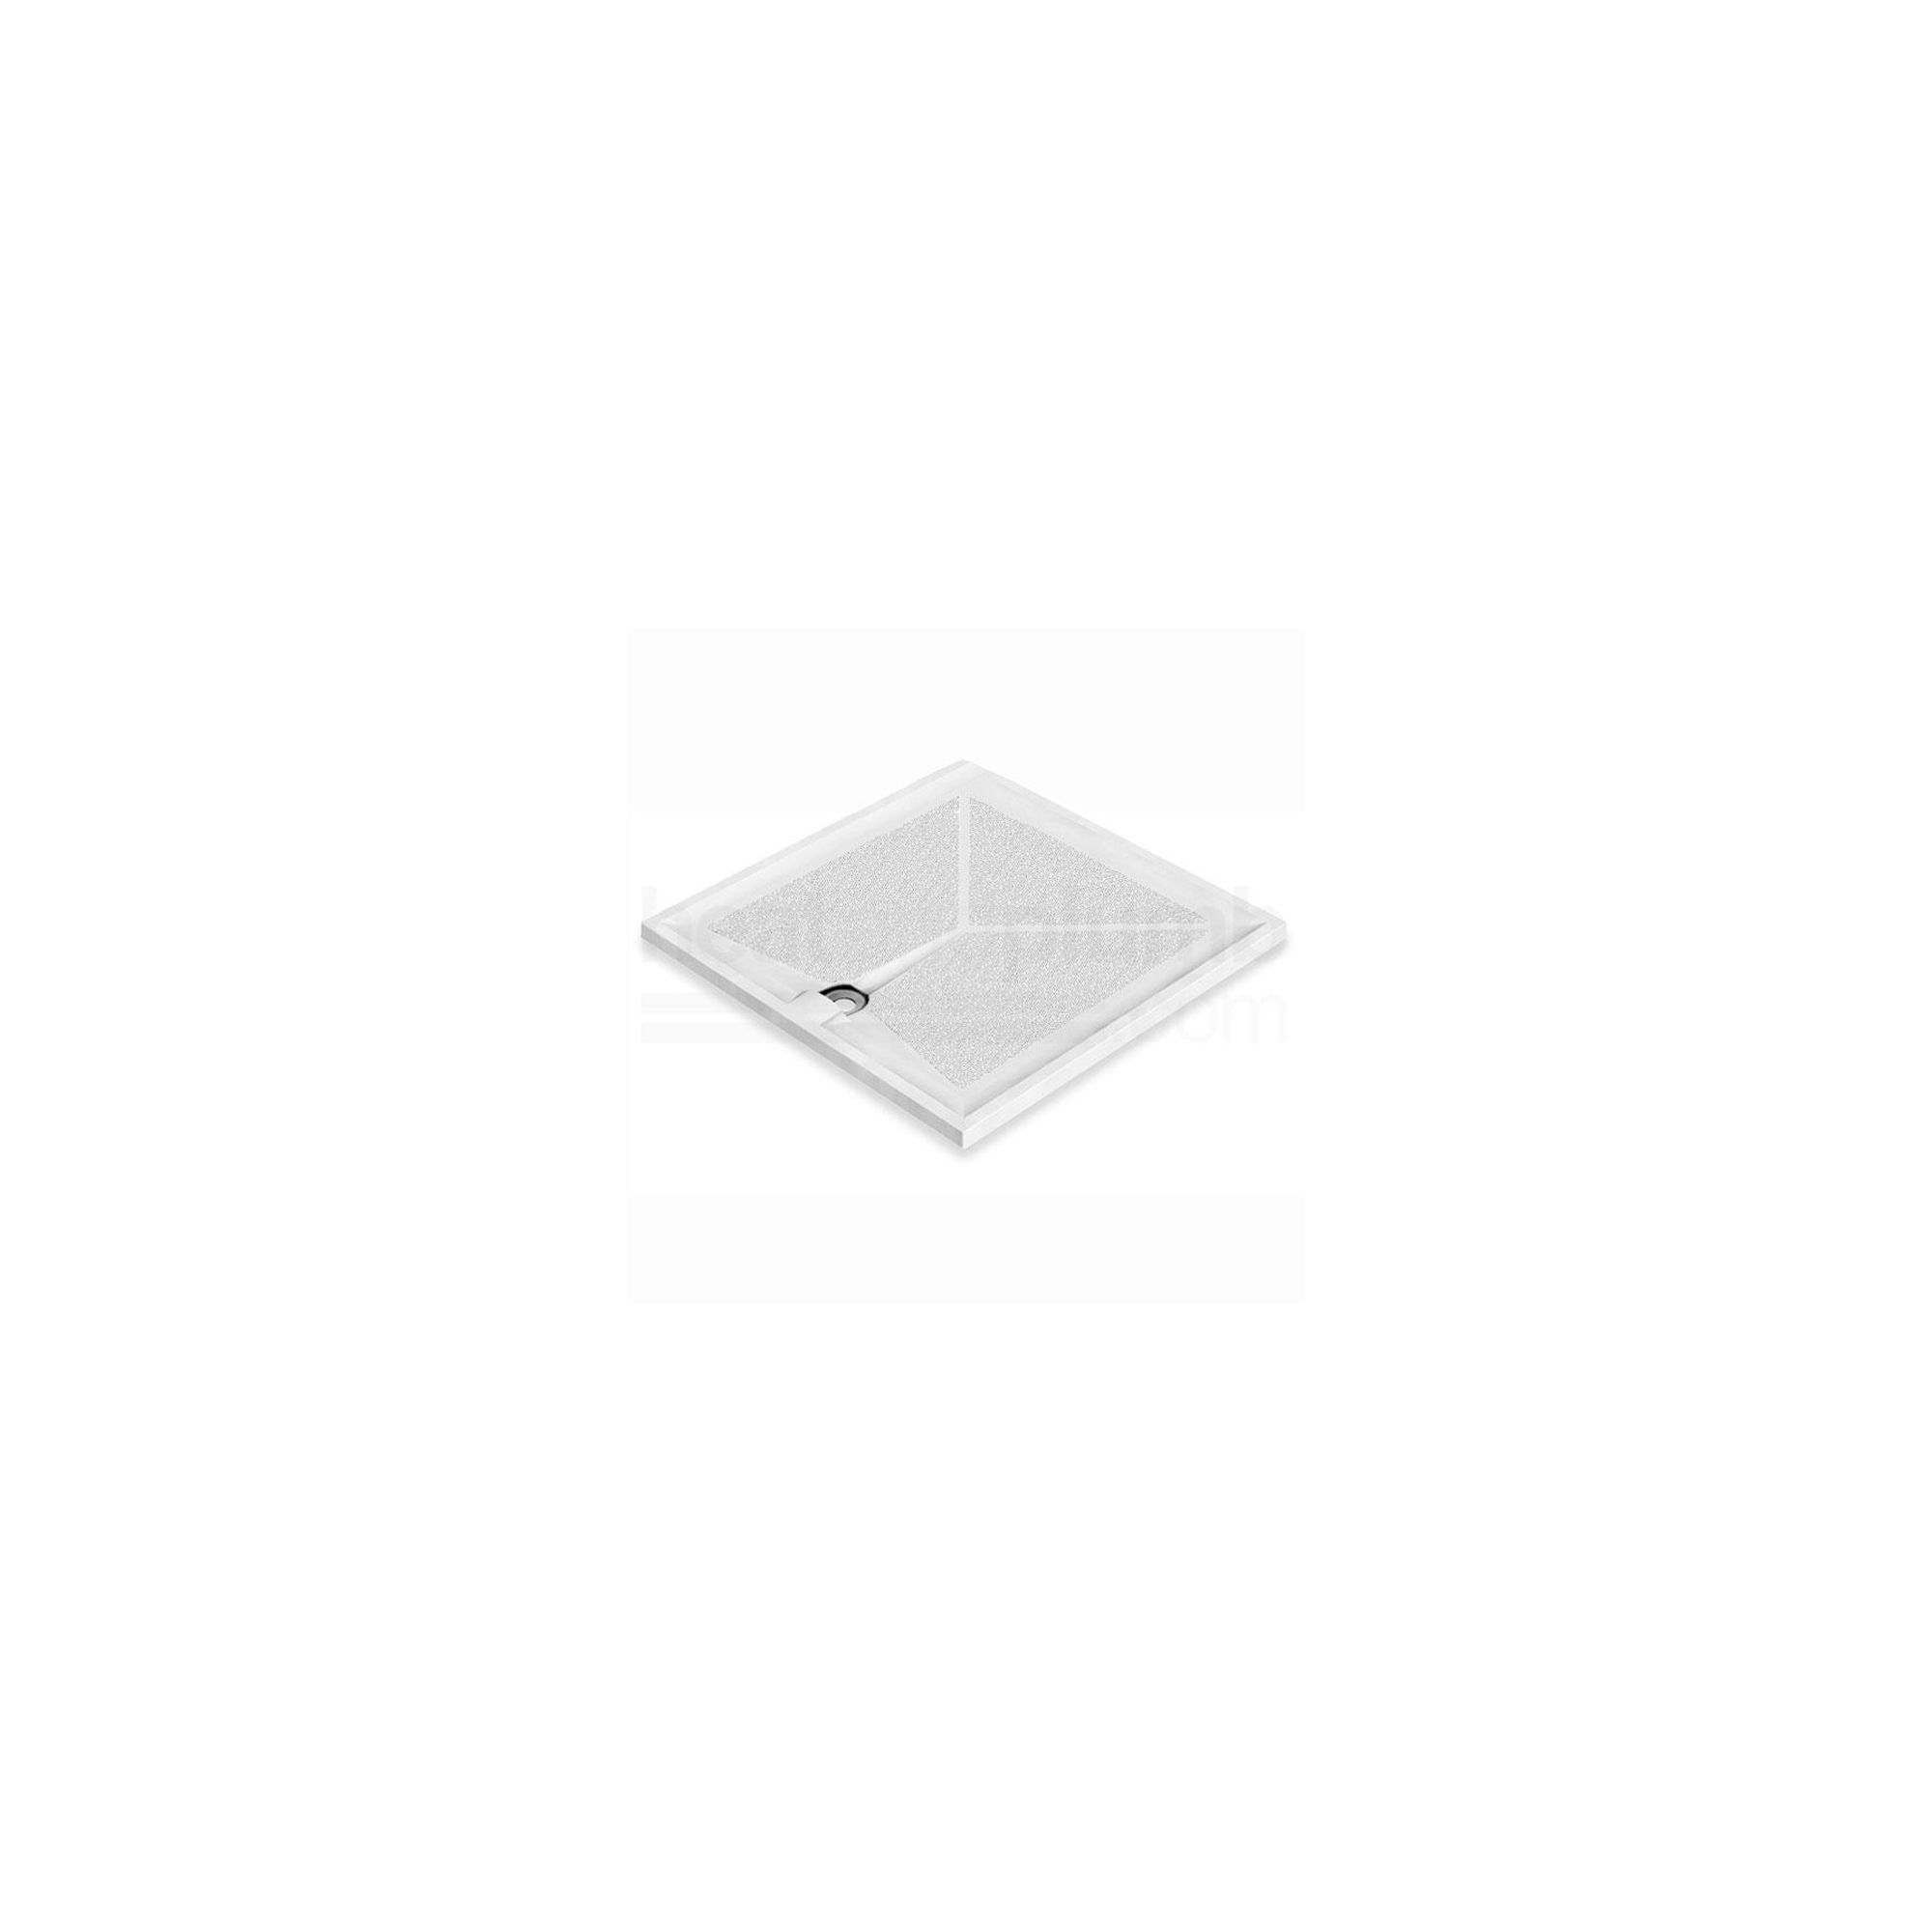 AKW Braddan Square Shower Tray 800mm x 800mm at Tesco Direct